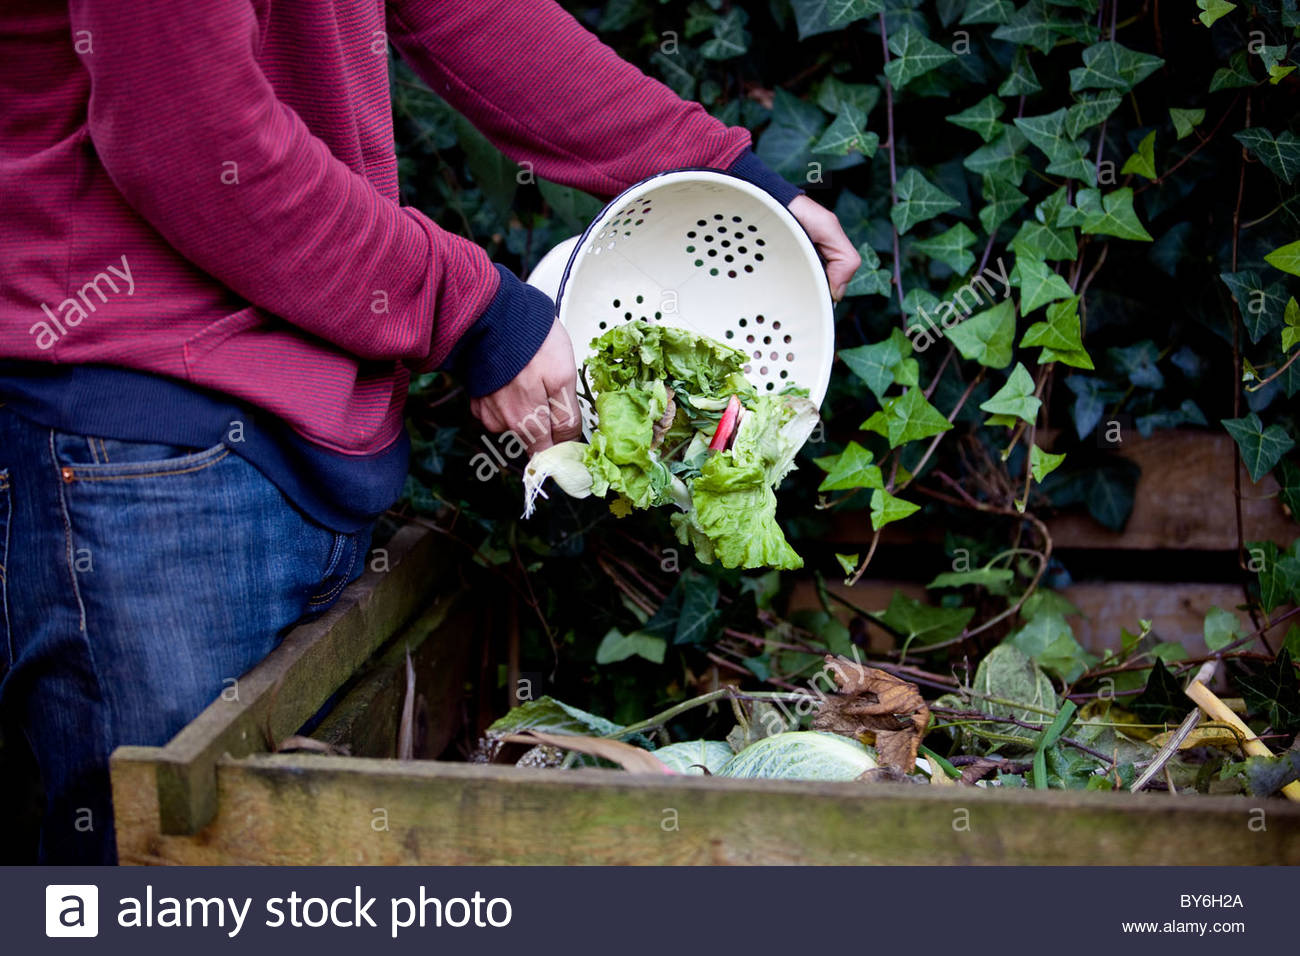 A man emptying vegetable peelings onto a compost heap - Stock Image